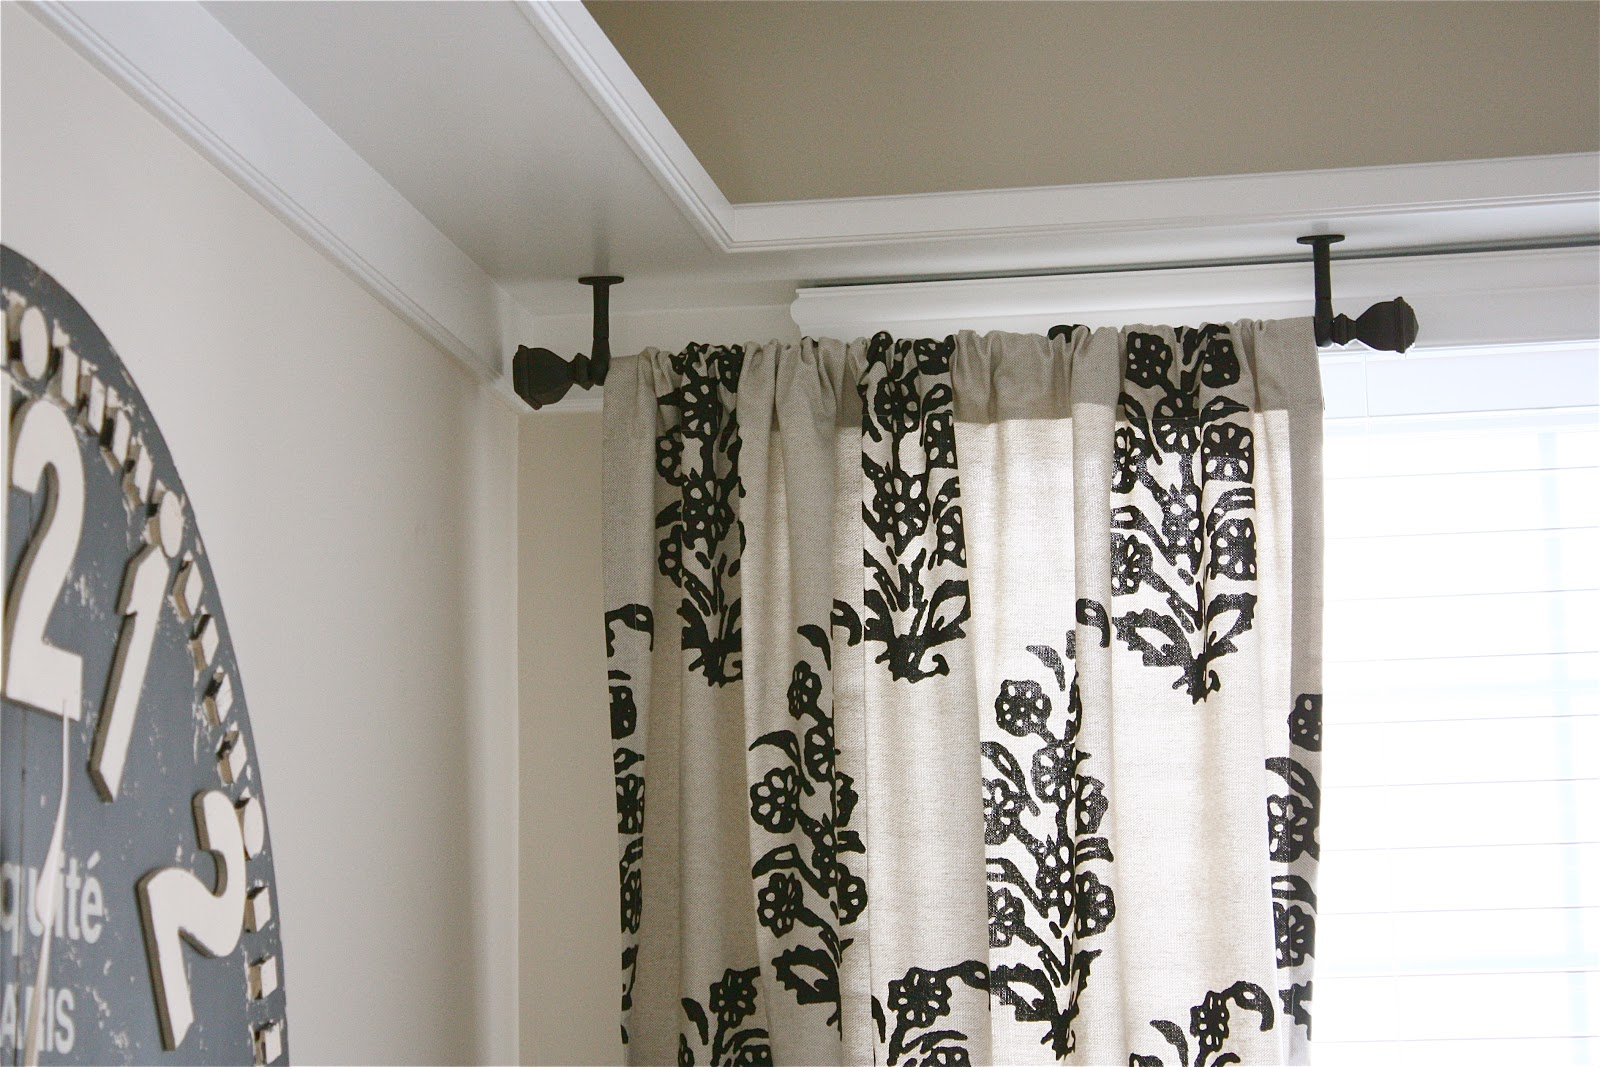 Bay window curtain rod ceiling mount - Emejing Ceiling Mount Curtain Rods Gallery Marketuganda Com